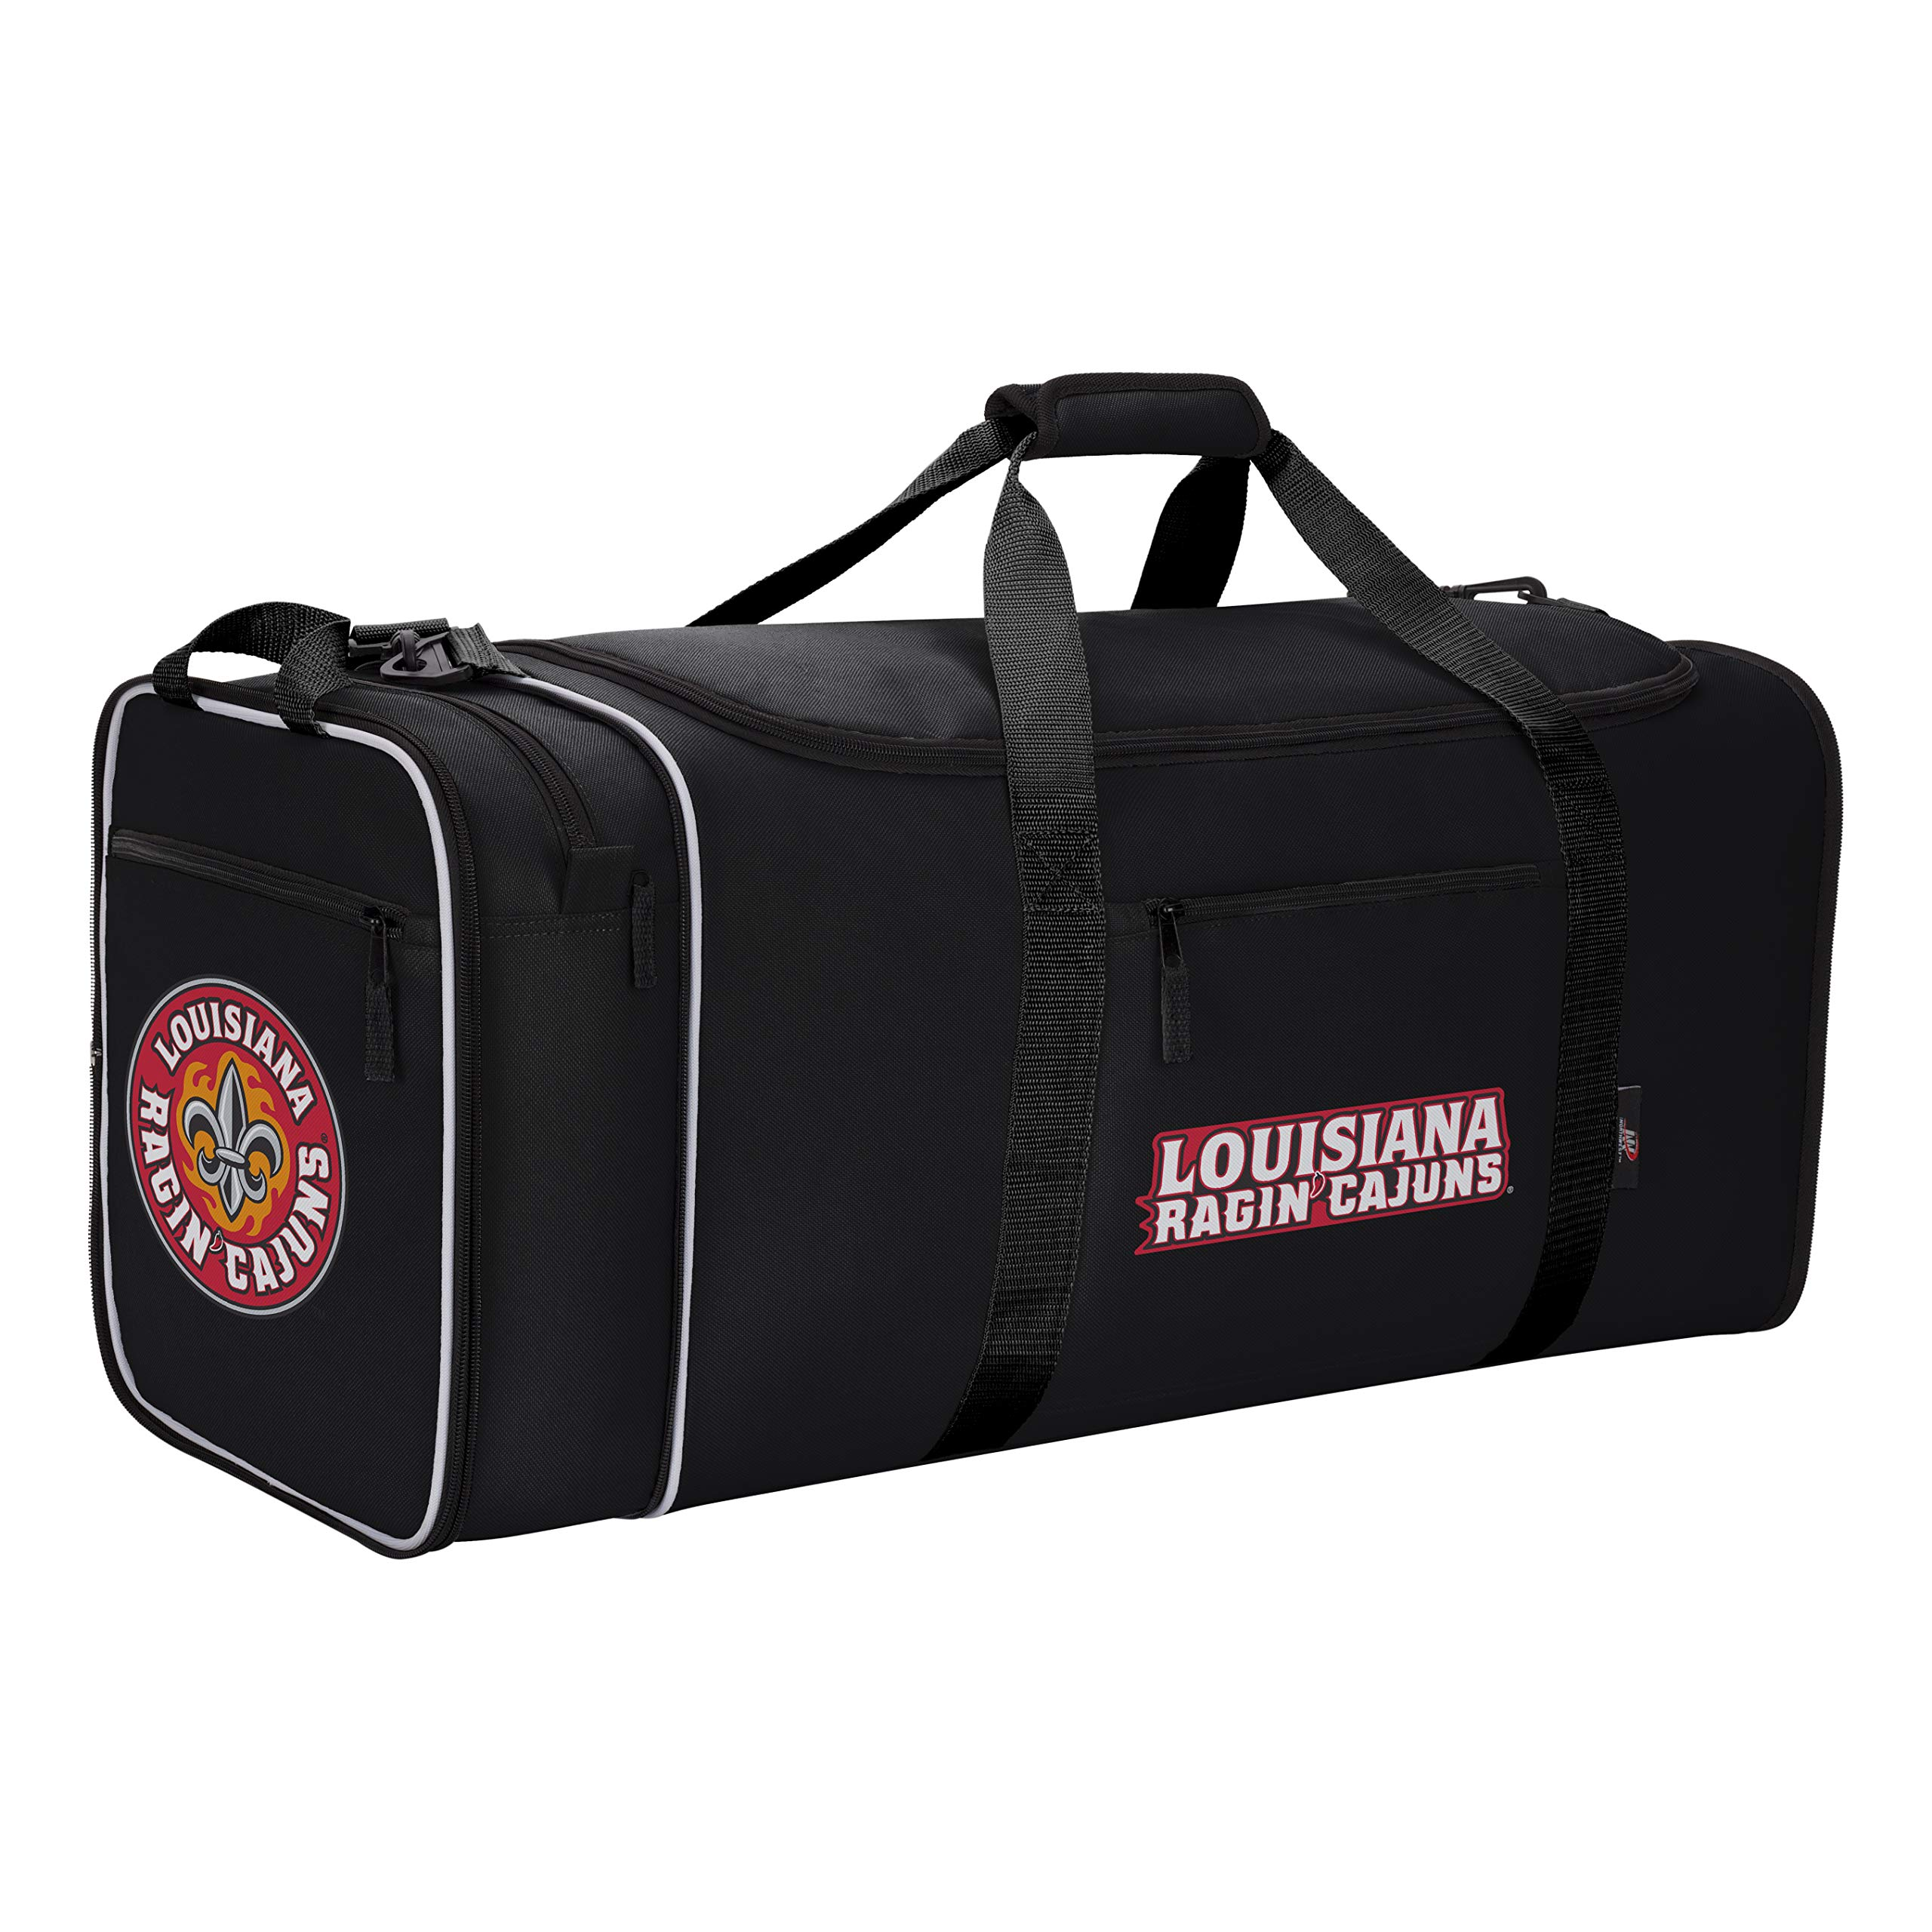 NCAA Unisex Steal Duffel Louisiana@Lafayettet Black by The Northwest Company (Image #1)